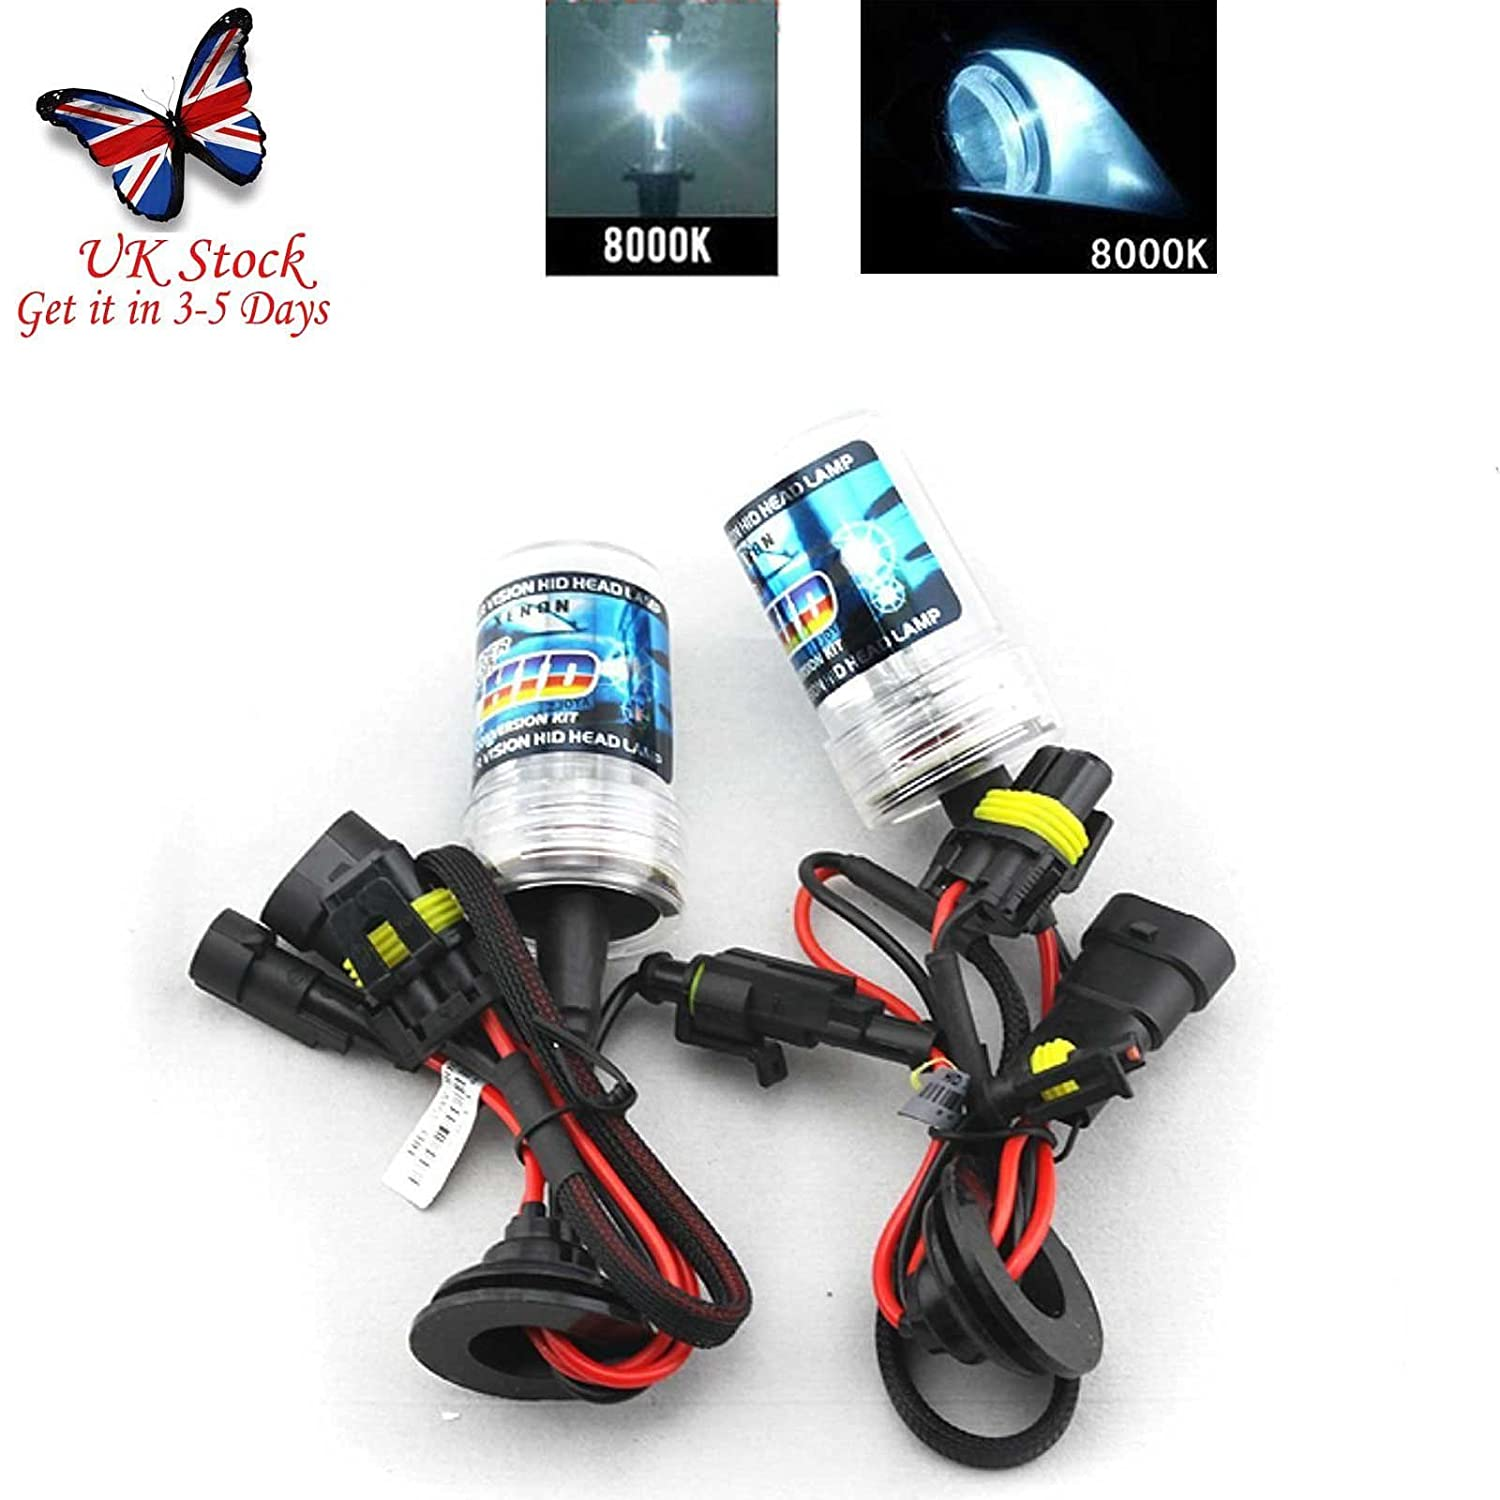 Autofather 55W 9006 (HB4) HID Xenon Headlight Replacement Bulbs-2 Pcs Bulbs 8000K Blue&White Color BoHao